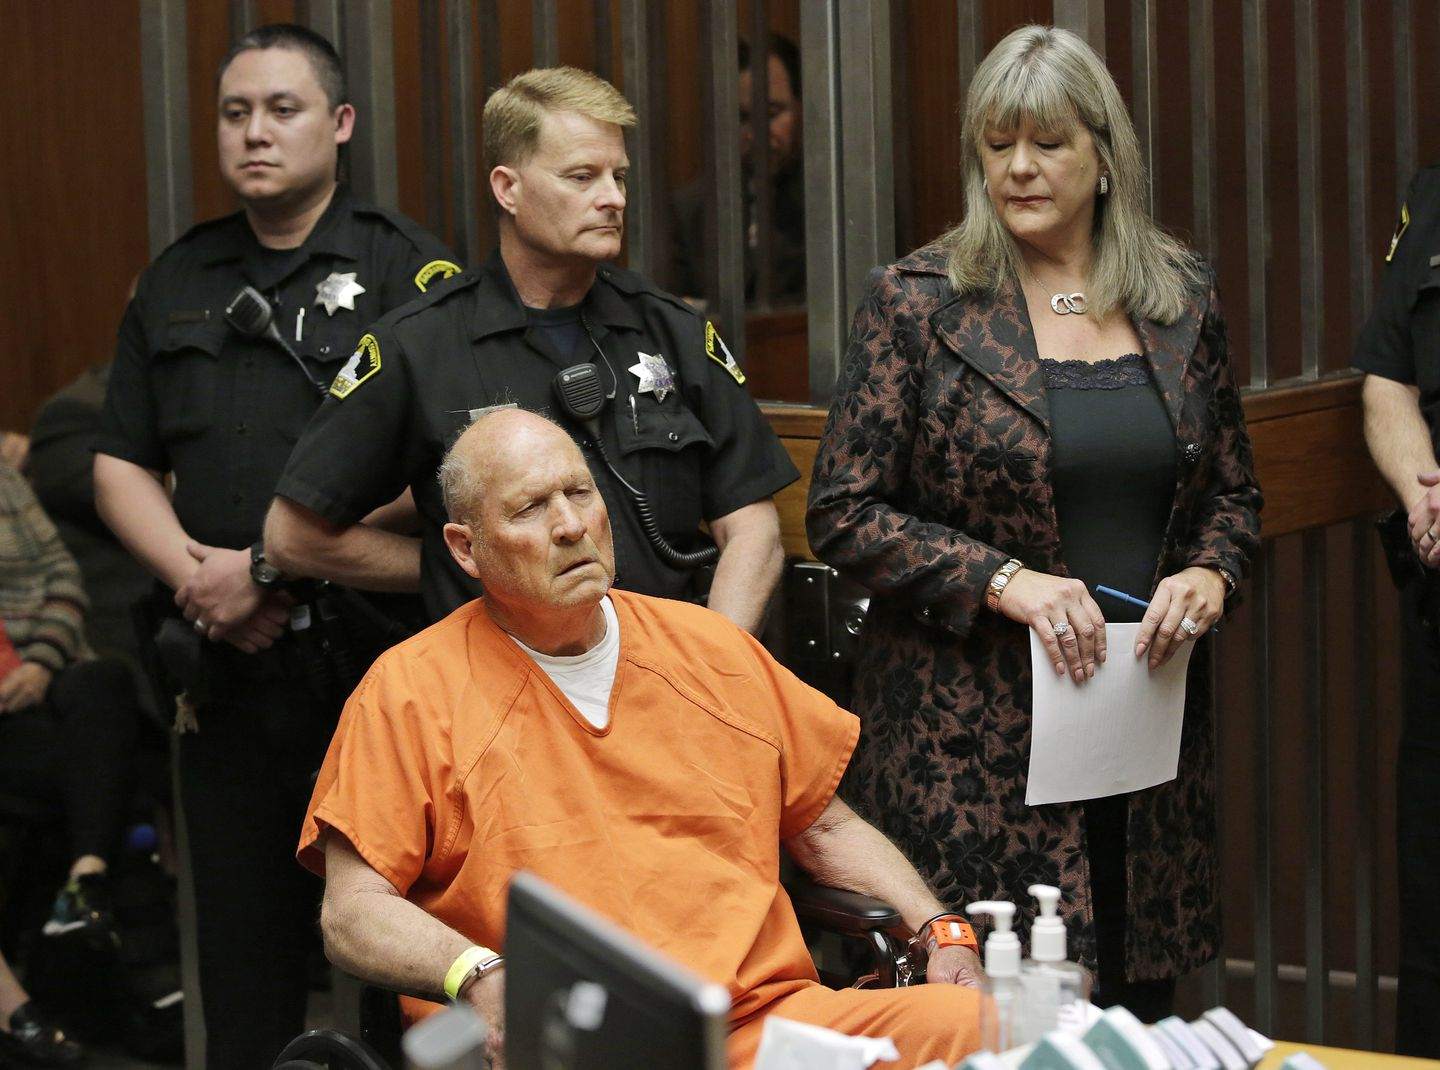 Meet Sharon Huddle, The Lawyer Who Was Married To The Golden State Killer During His Bloody Reign